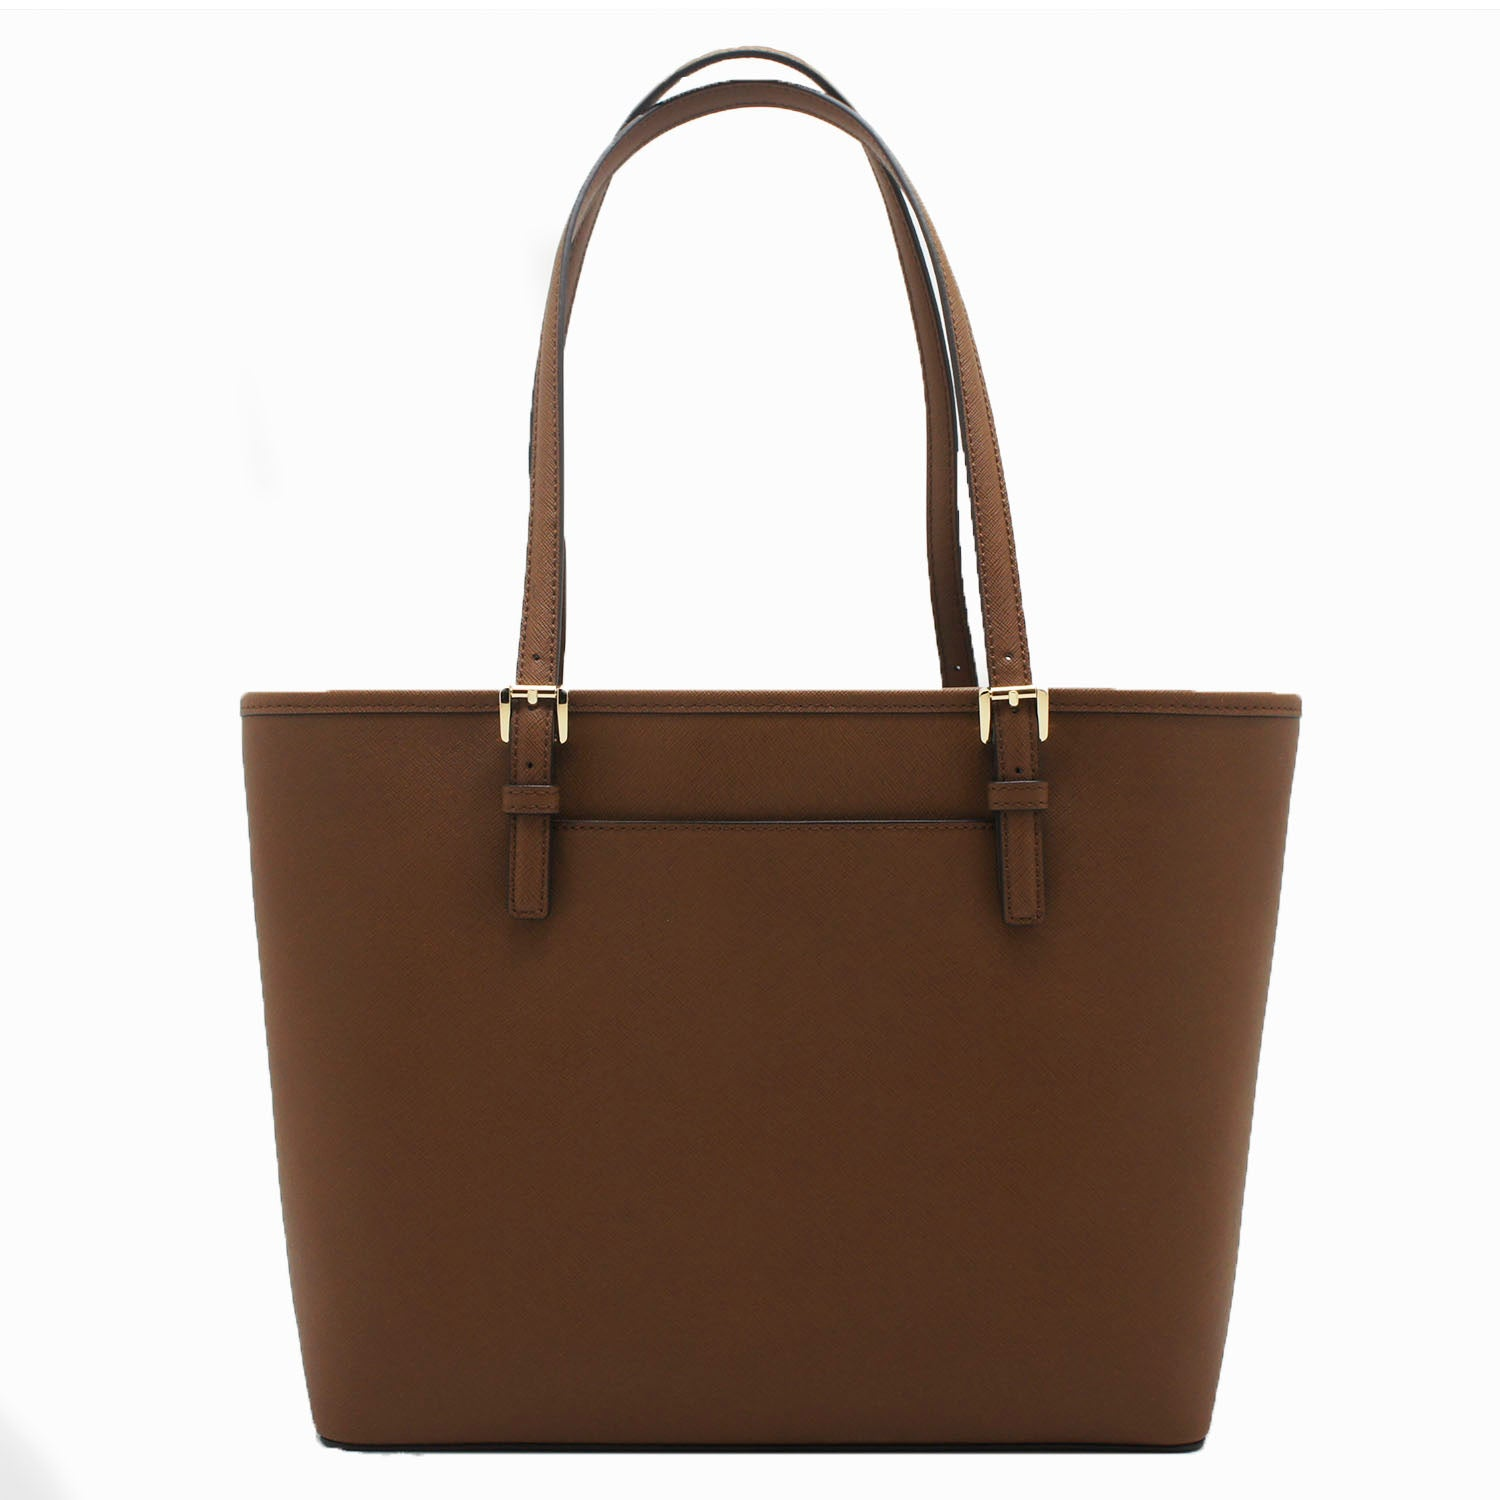 Bolsa Michael Kors Tote Jet Set Travel Brown